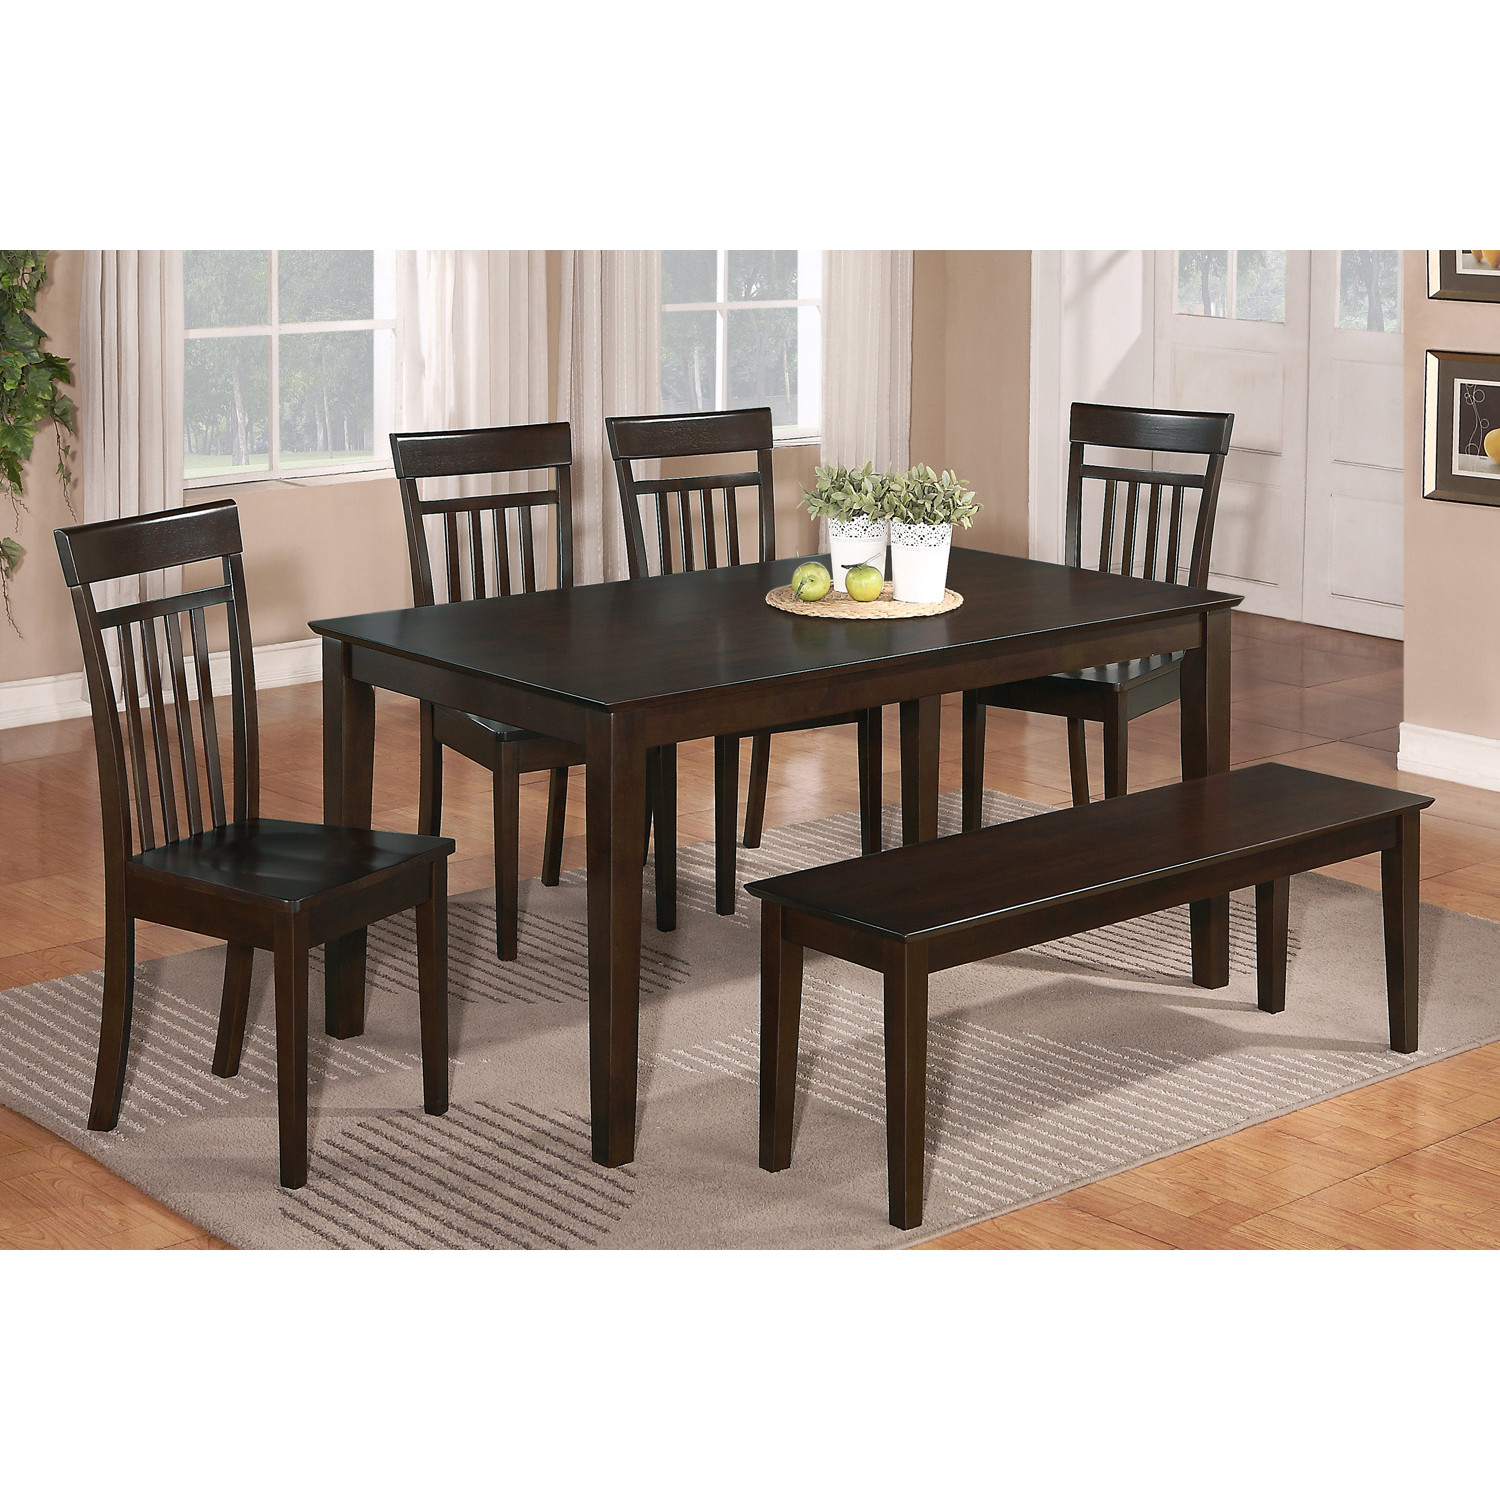 Dining Room With Bench: Awesome Dinette Sets With Bench